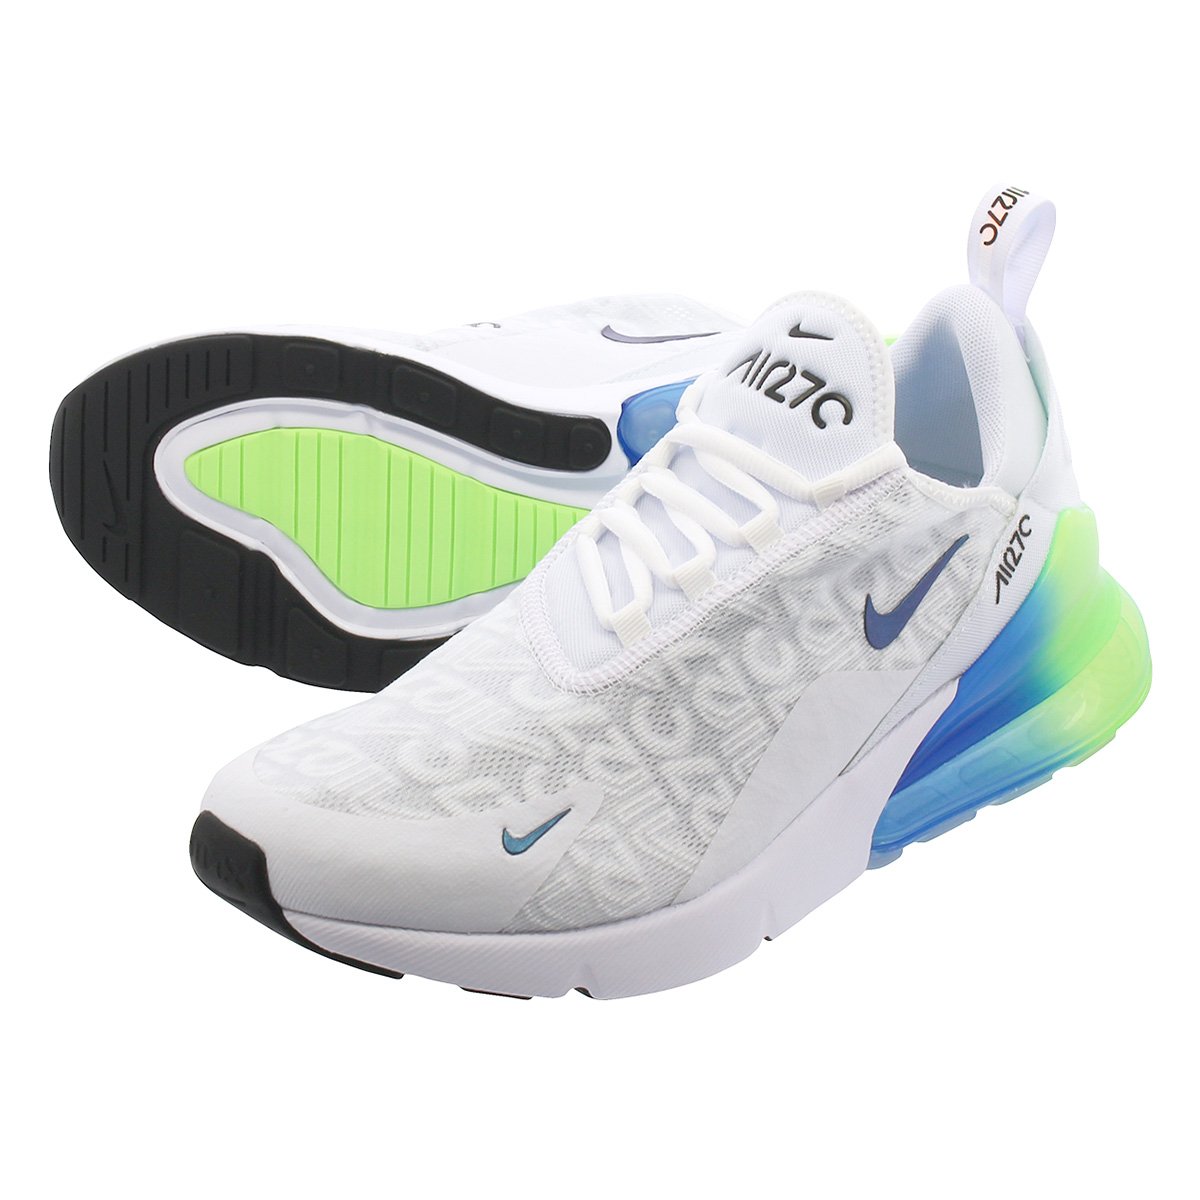 NIKE Kie Ney AMAX 270 sneakers men AIR MAX 270 SE white white AQ9164 100